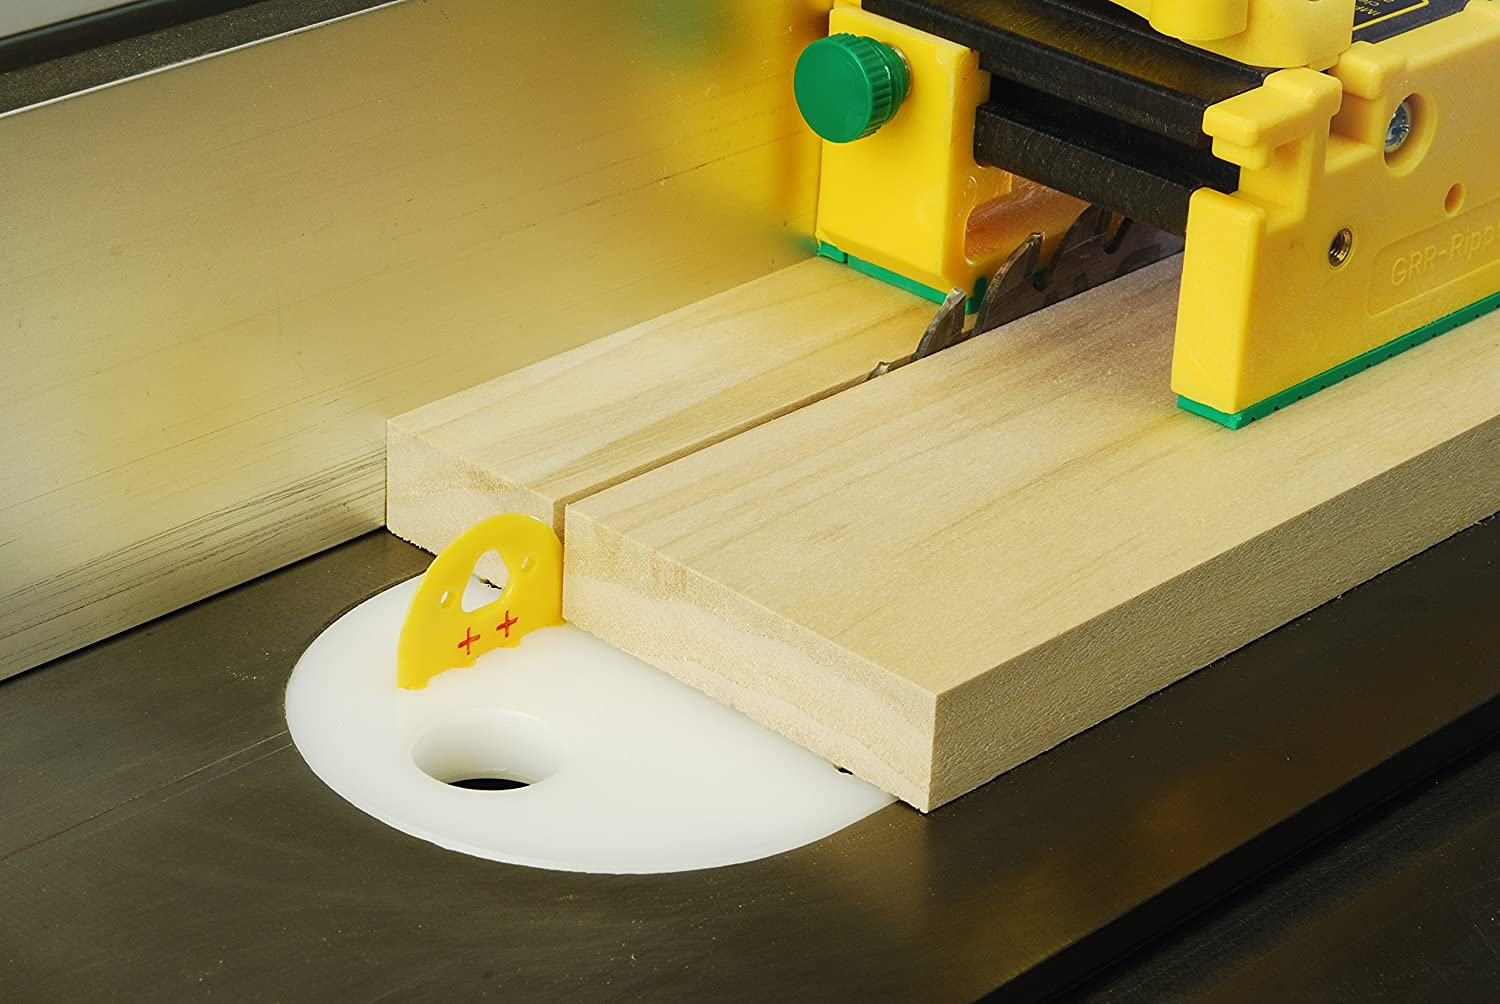 Miraculous Mj Splitter Table Saw Safety Splitter And Riving Knife Alternative For Zero Clearance Insert Download Free Architecture Designs Embacsunscenecom